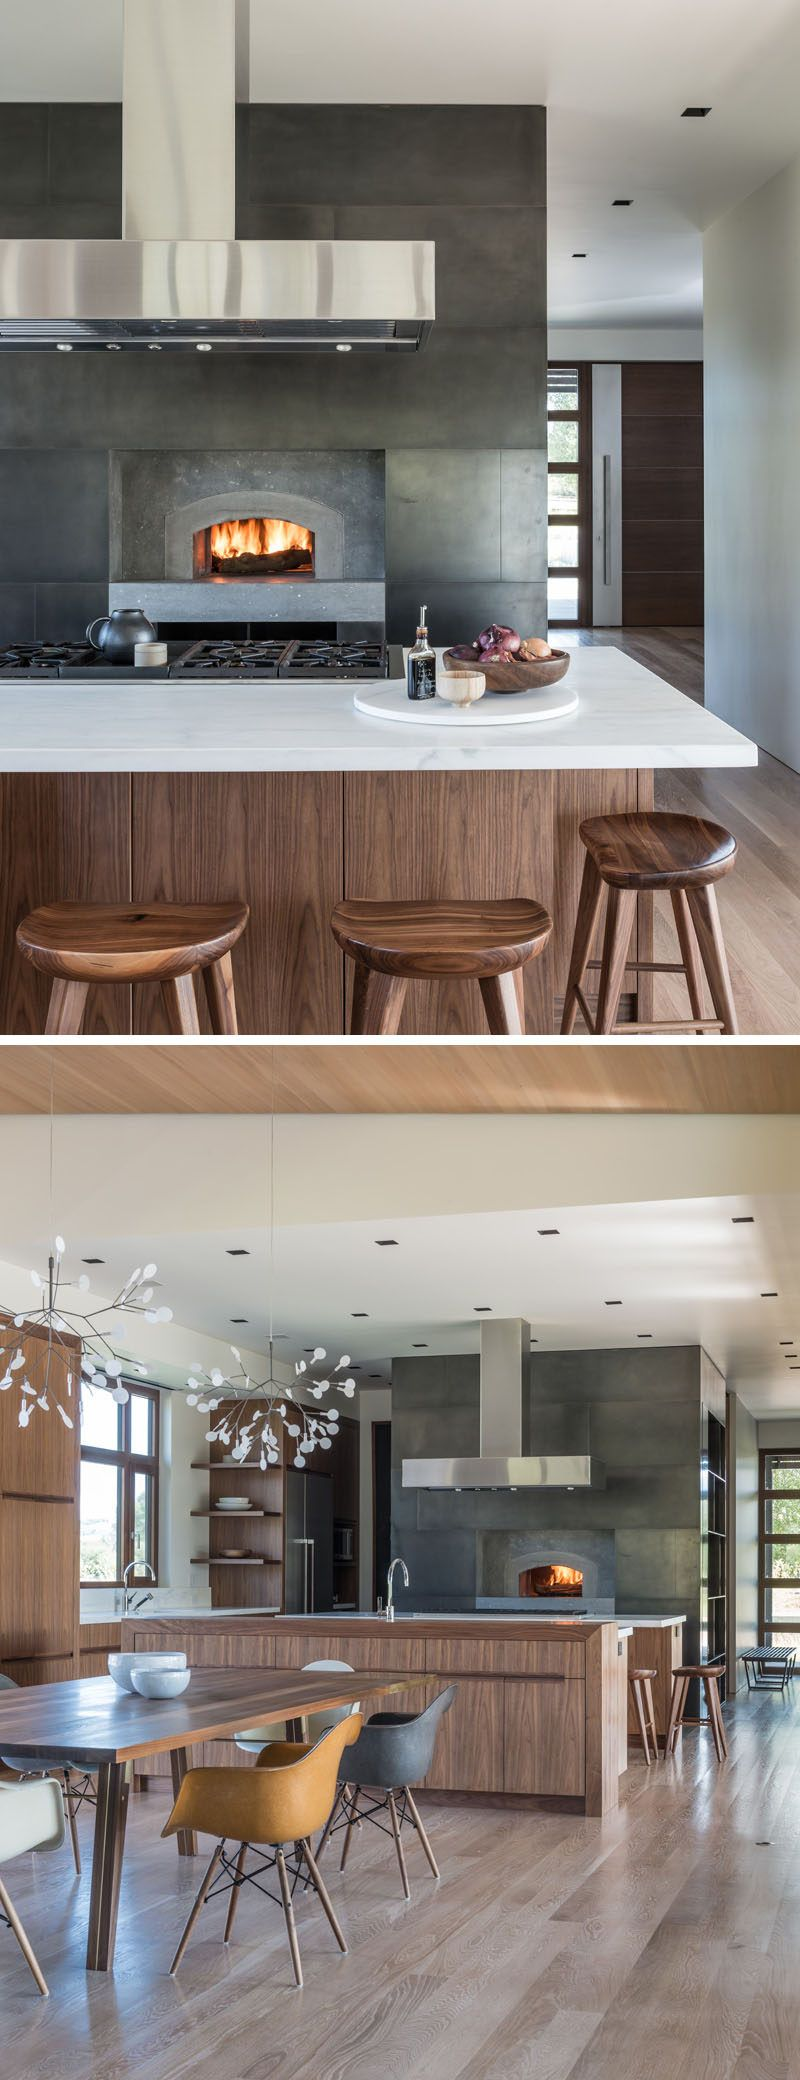 Kitchen Design Idea Include A Built In Wood Fire Oven In